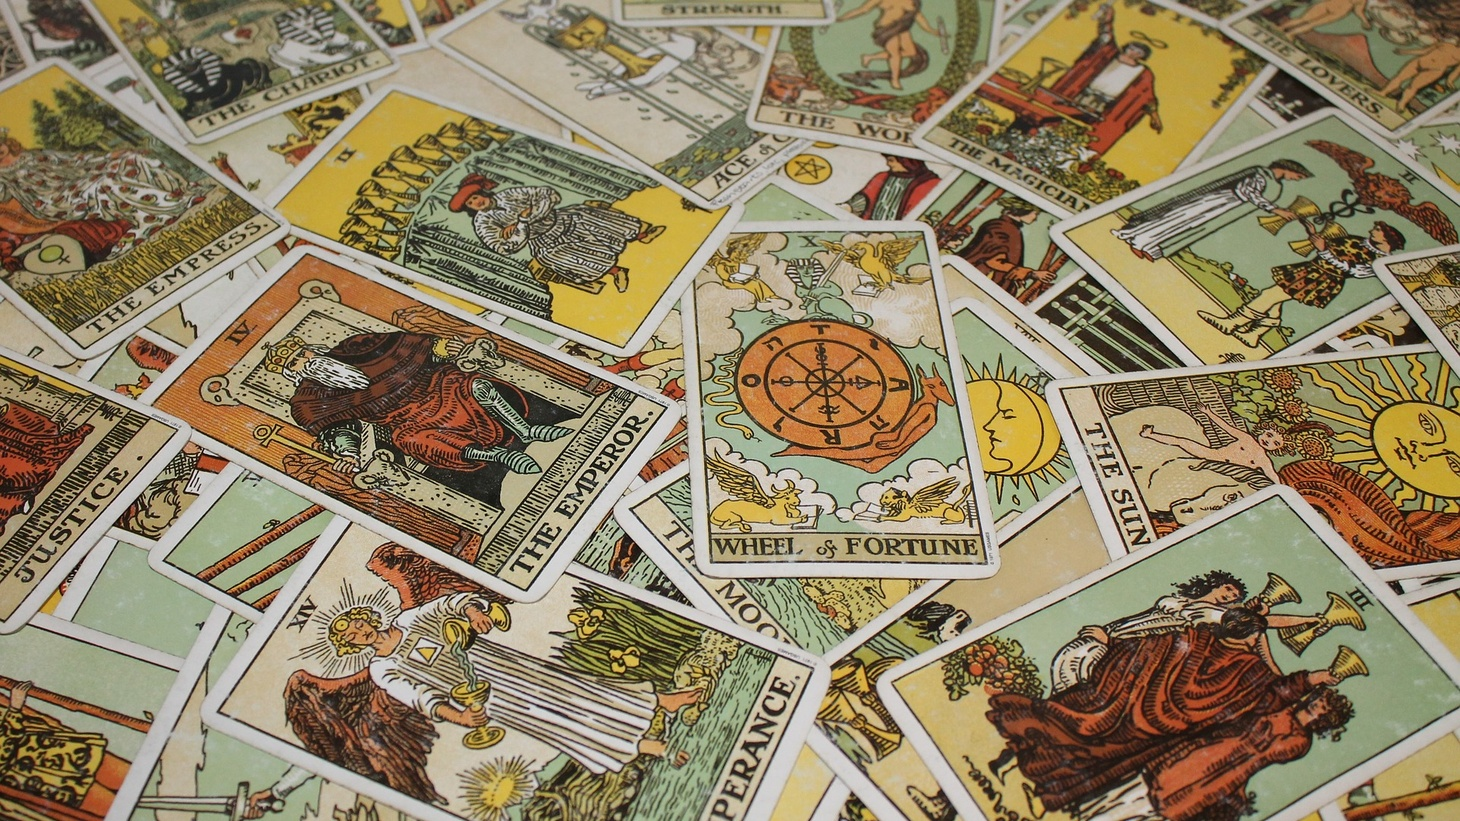 Today, astrology and tarot cards are enjoying a resurgence, helped in part by advancements in technology and an increase in spiritualism and a search for meaning and purpose.